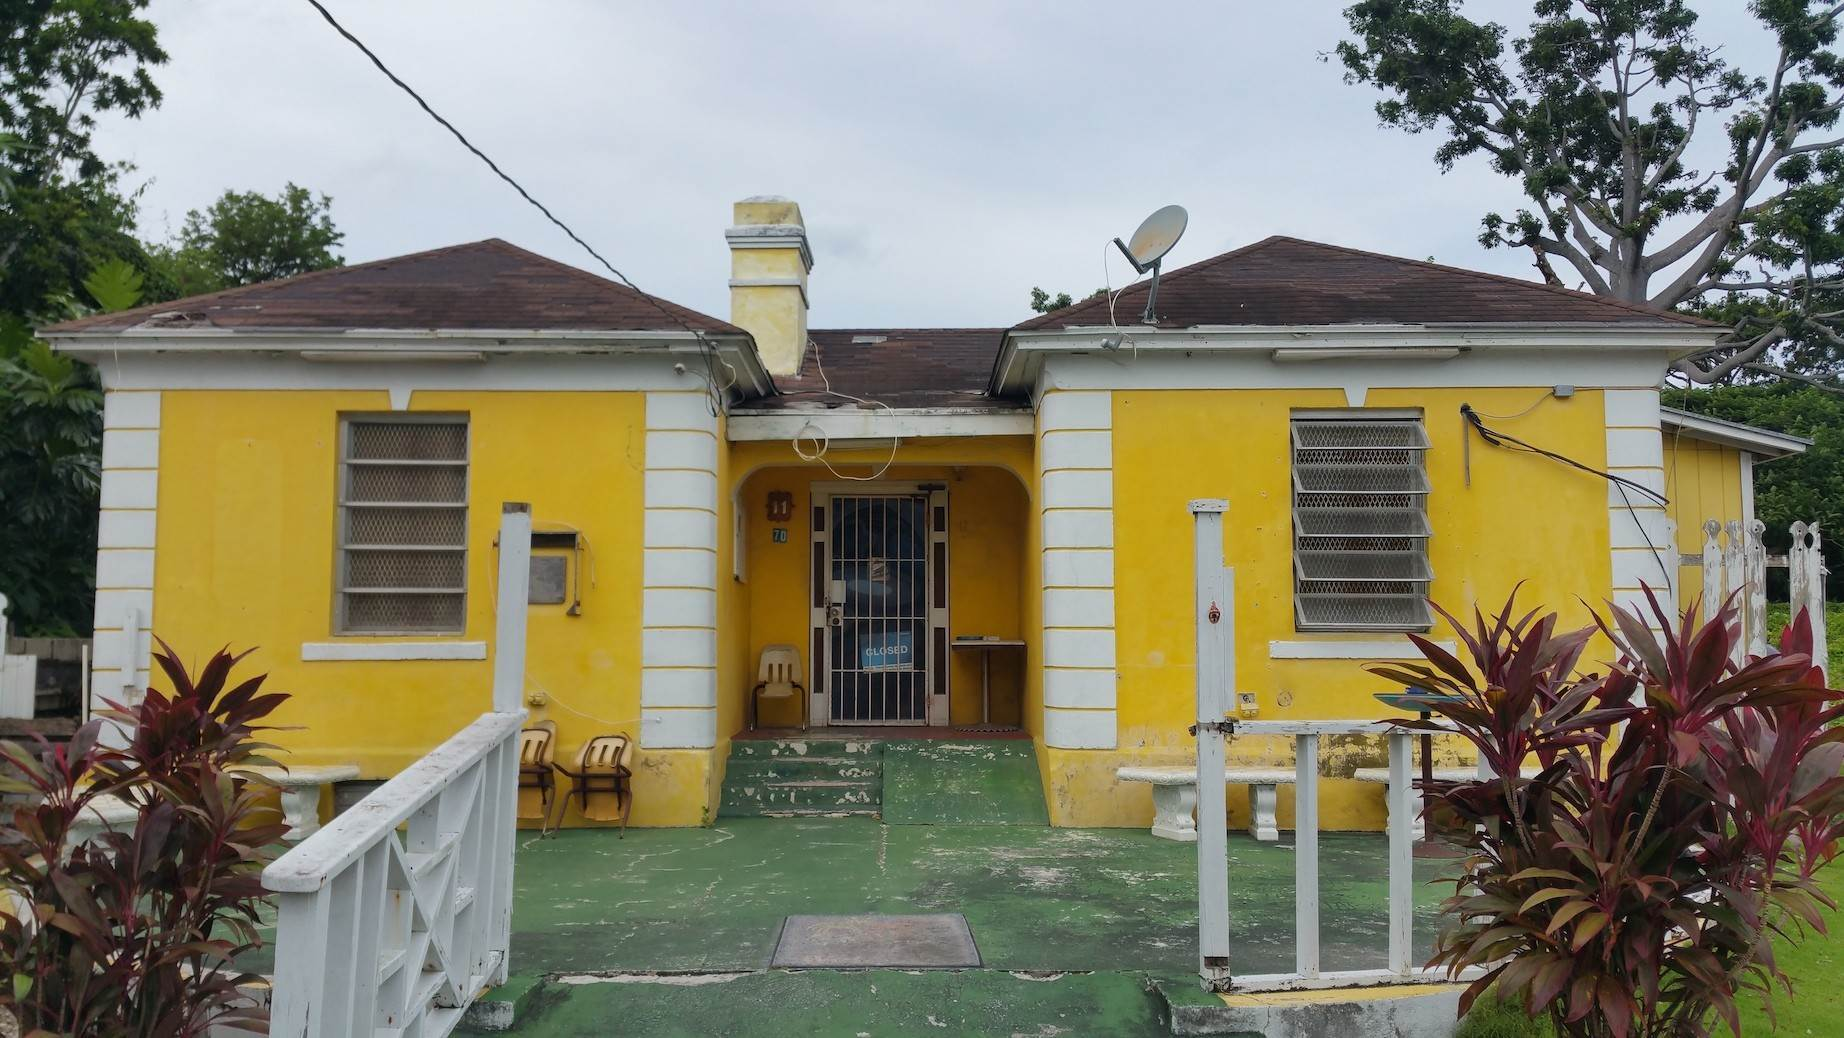 Commercial for Sale at Small Restaurant on Very Large Lot Chippingham, Nassau And Paradise Island, Bahamas